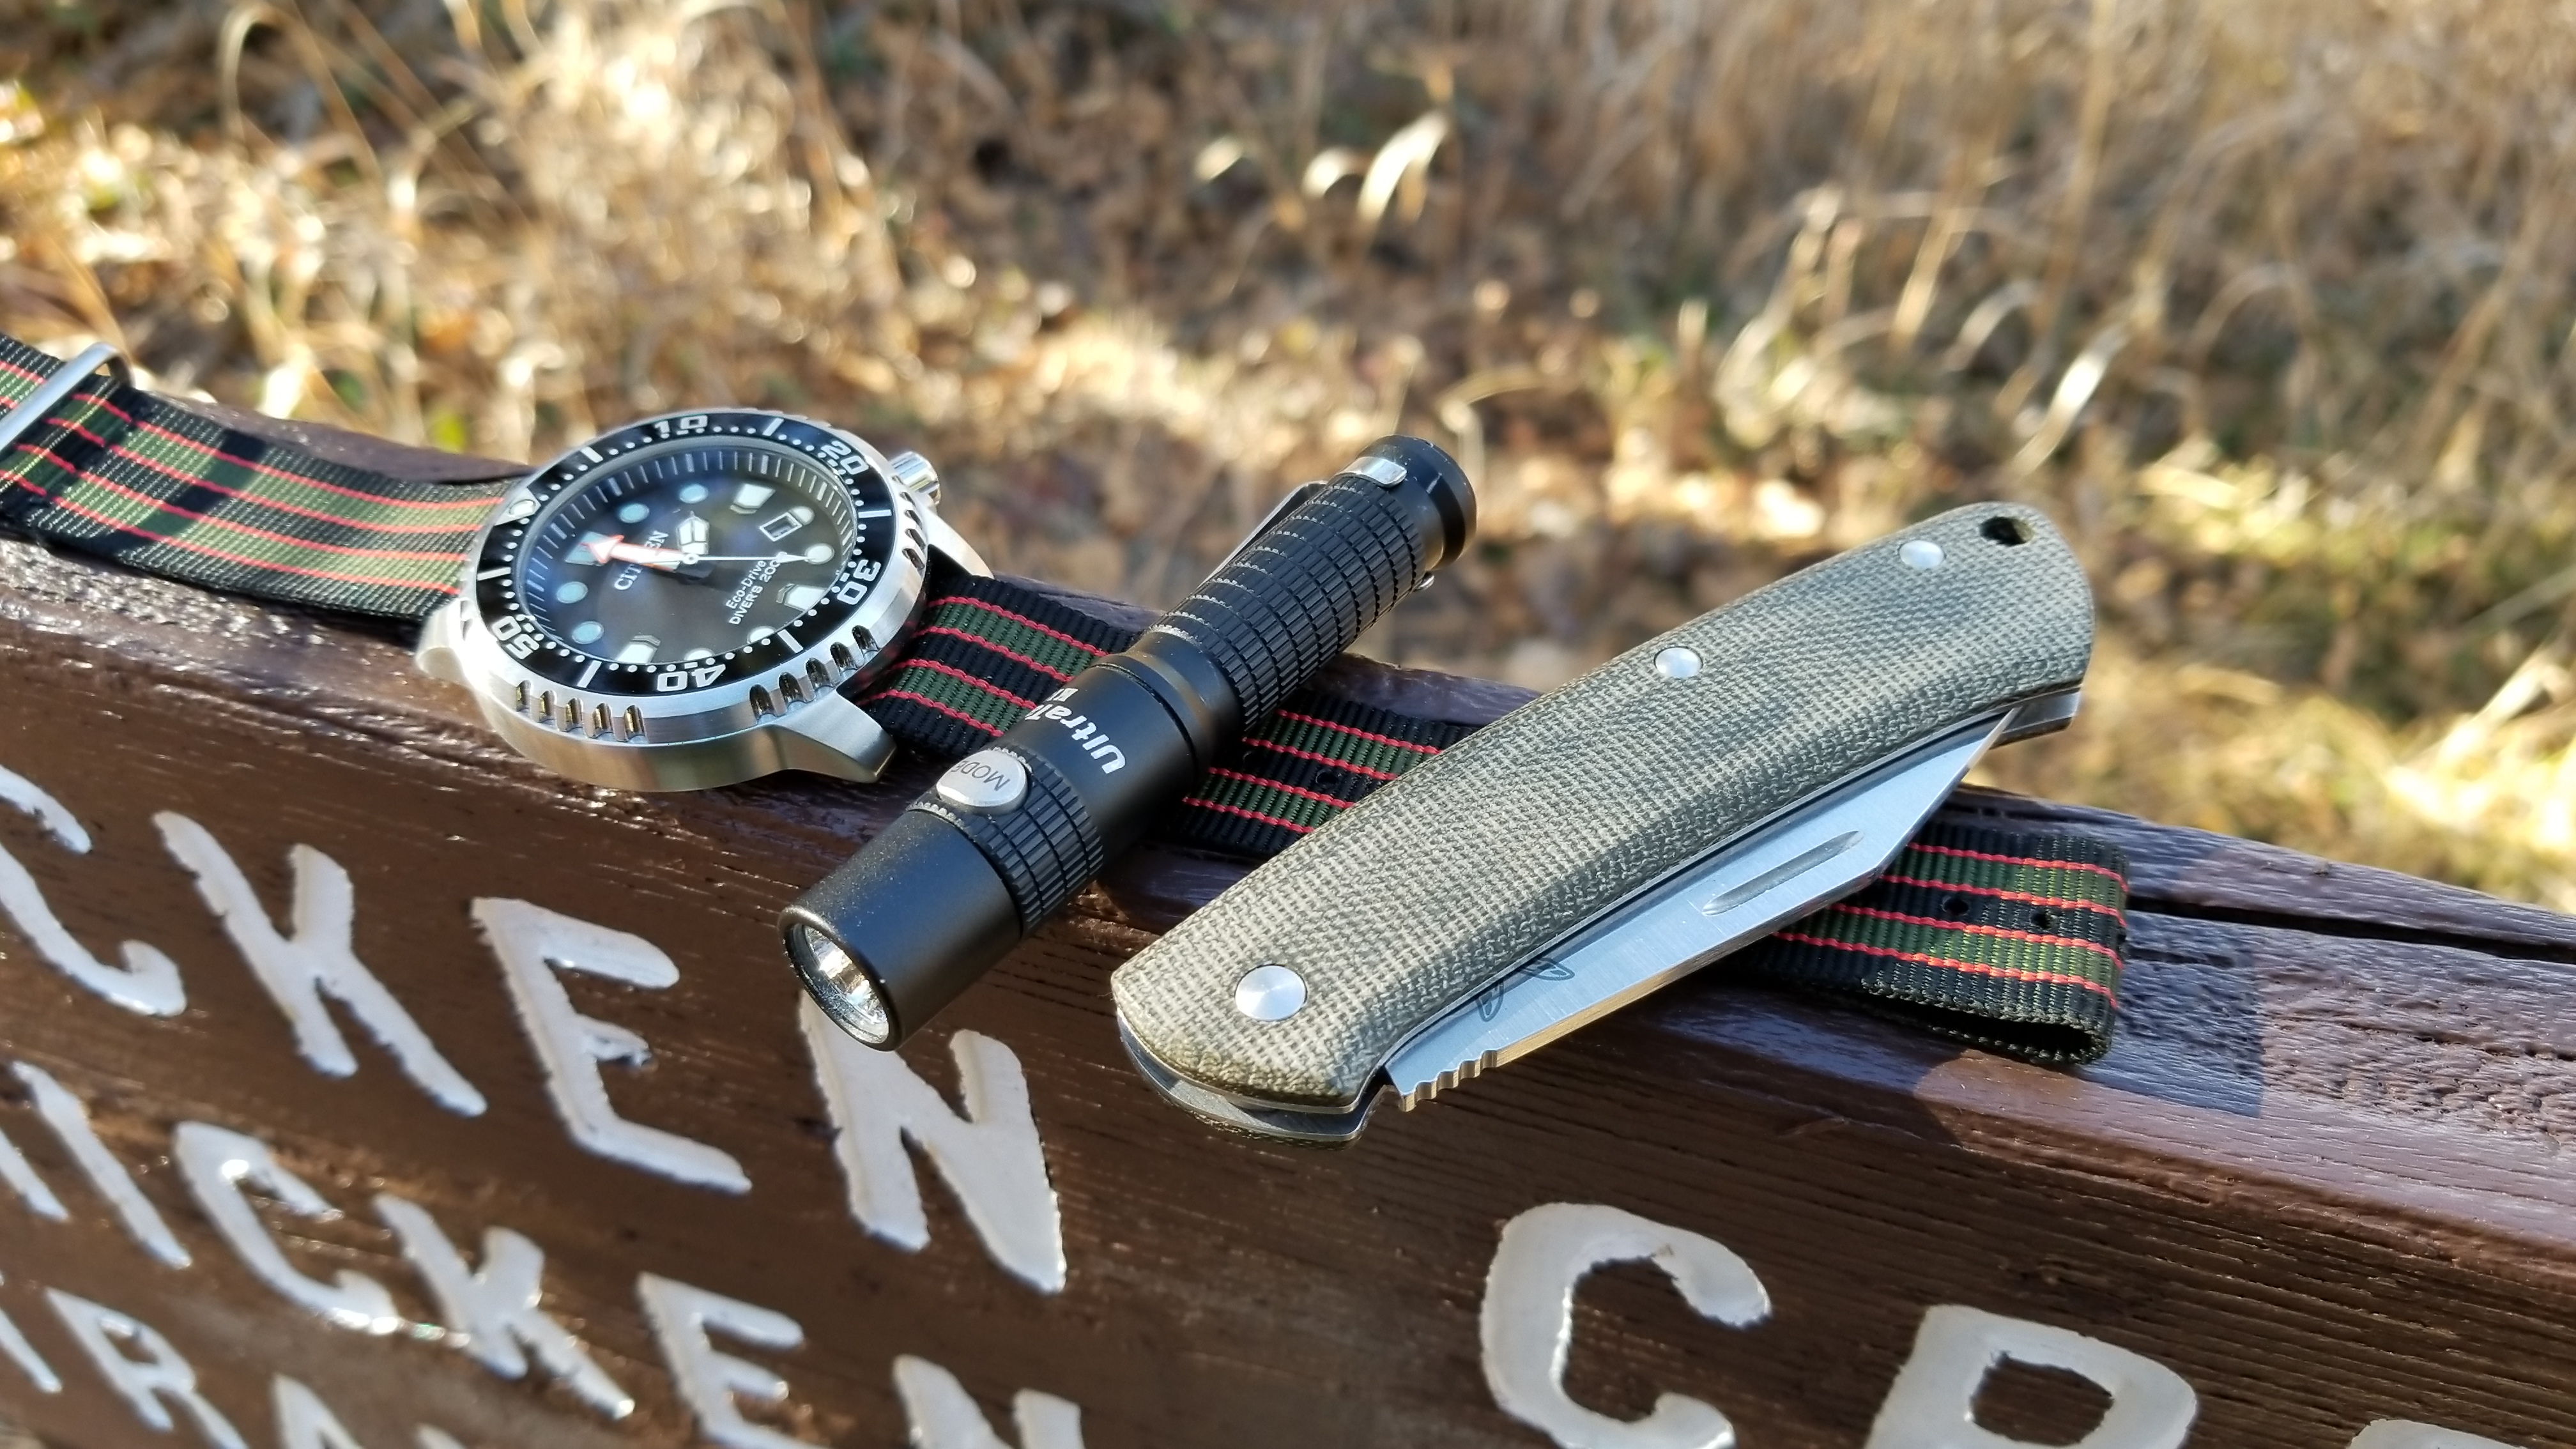 Non-Locking Standout: Benchmade Proper 318 Knife Review | GearJunkie